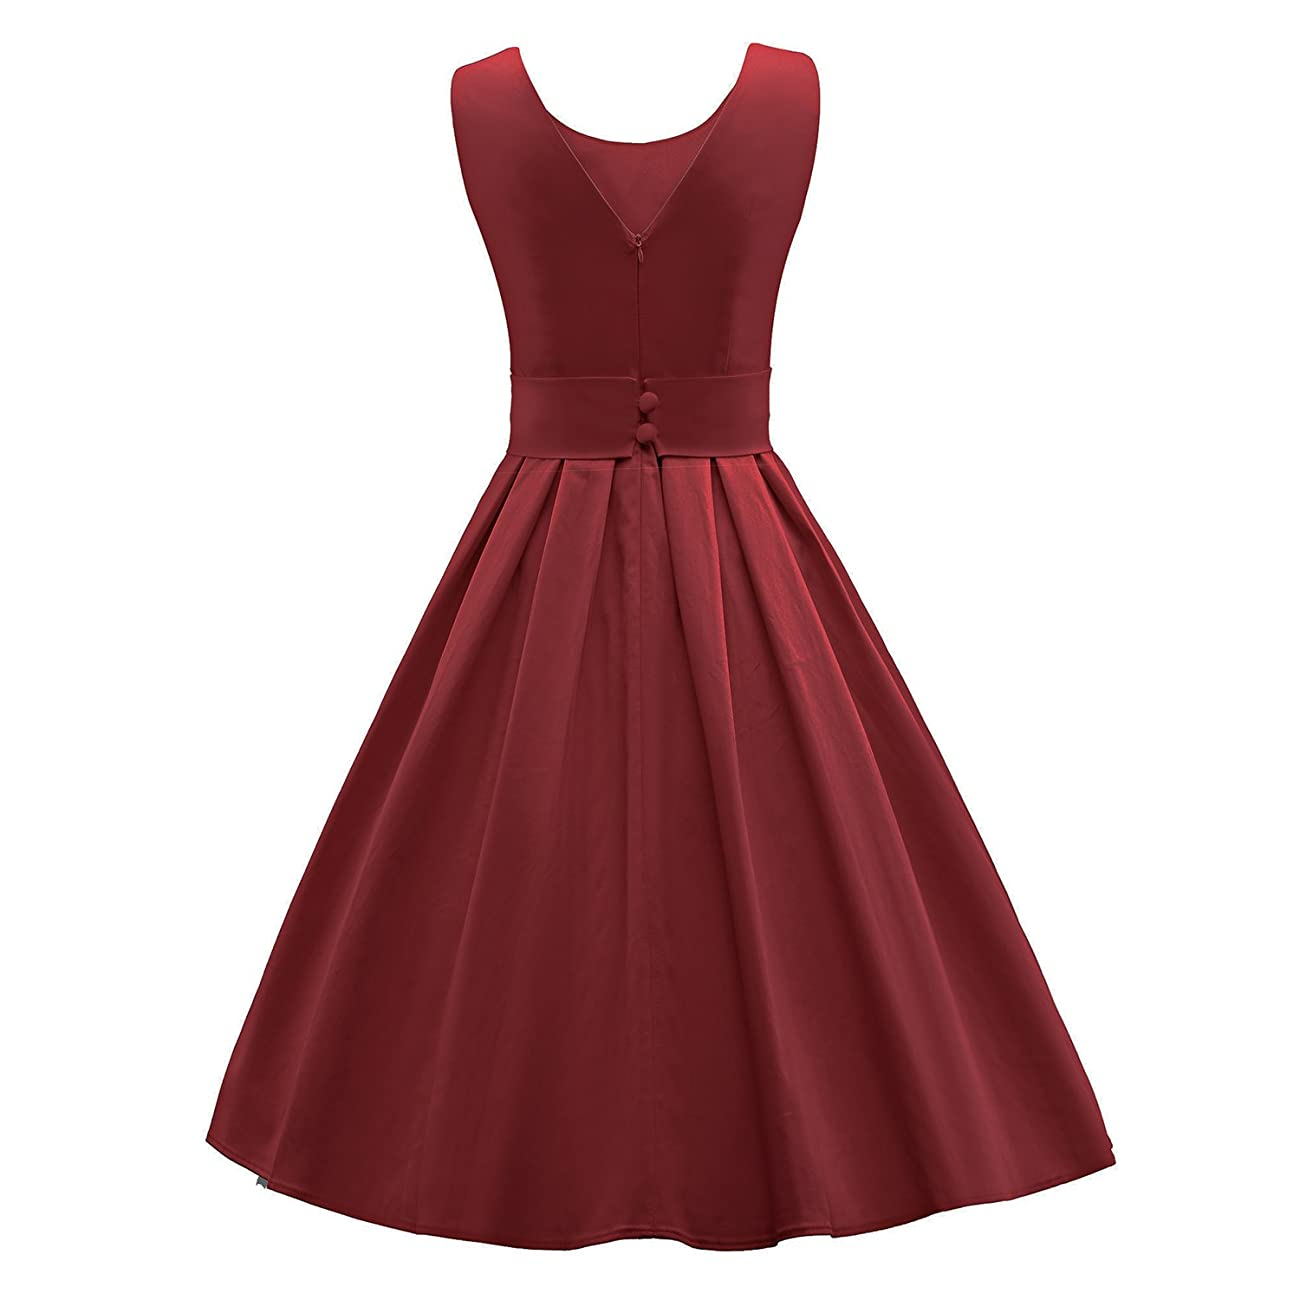 LUOUSE 'Lana' Vintage 1950's Inspired Rockabilly Swing Dress 2